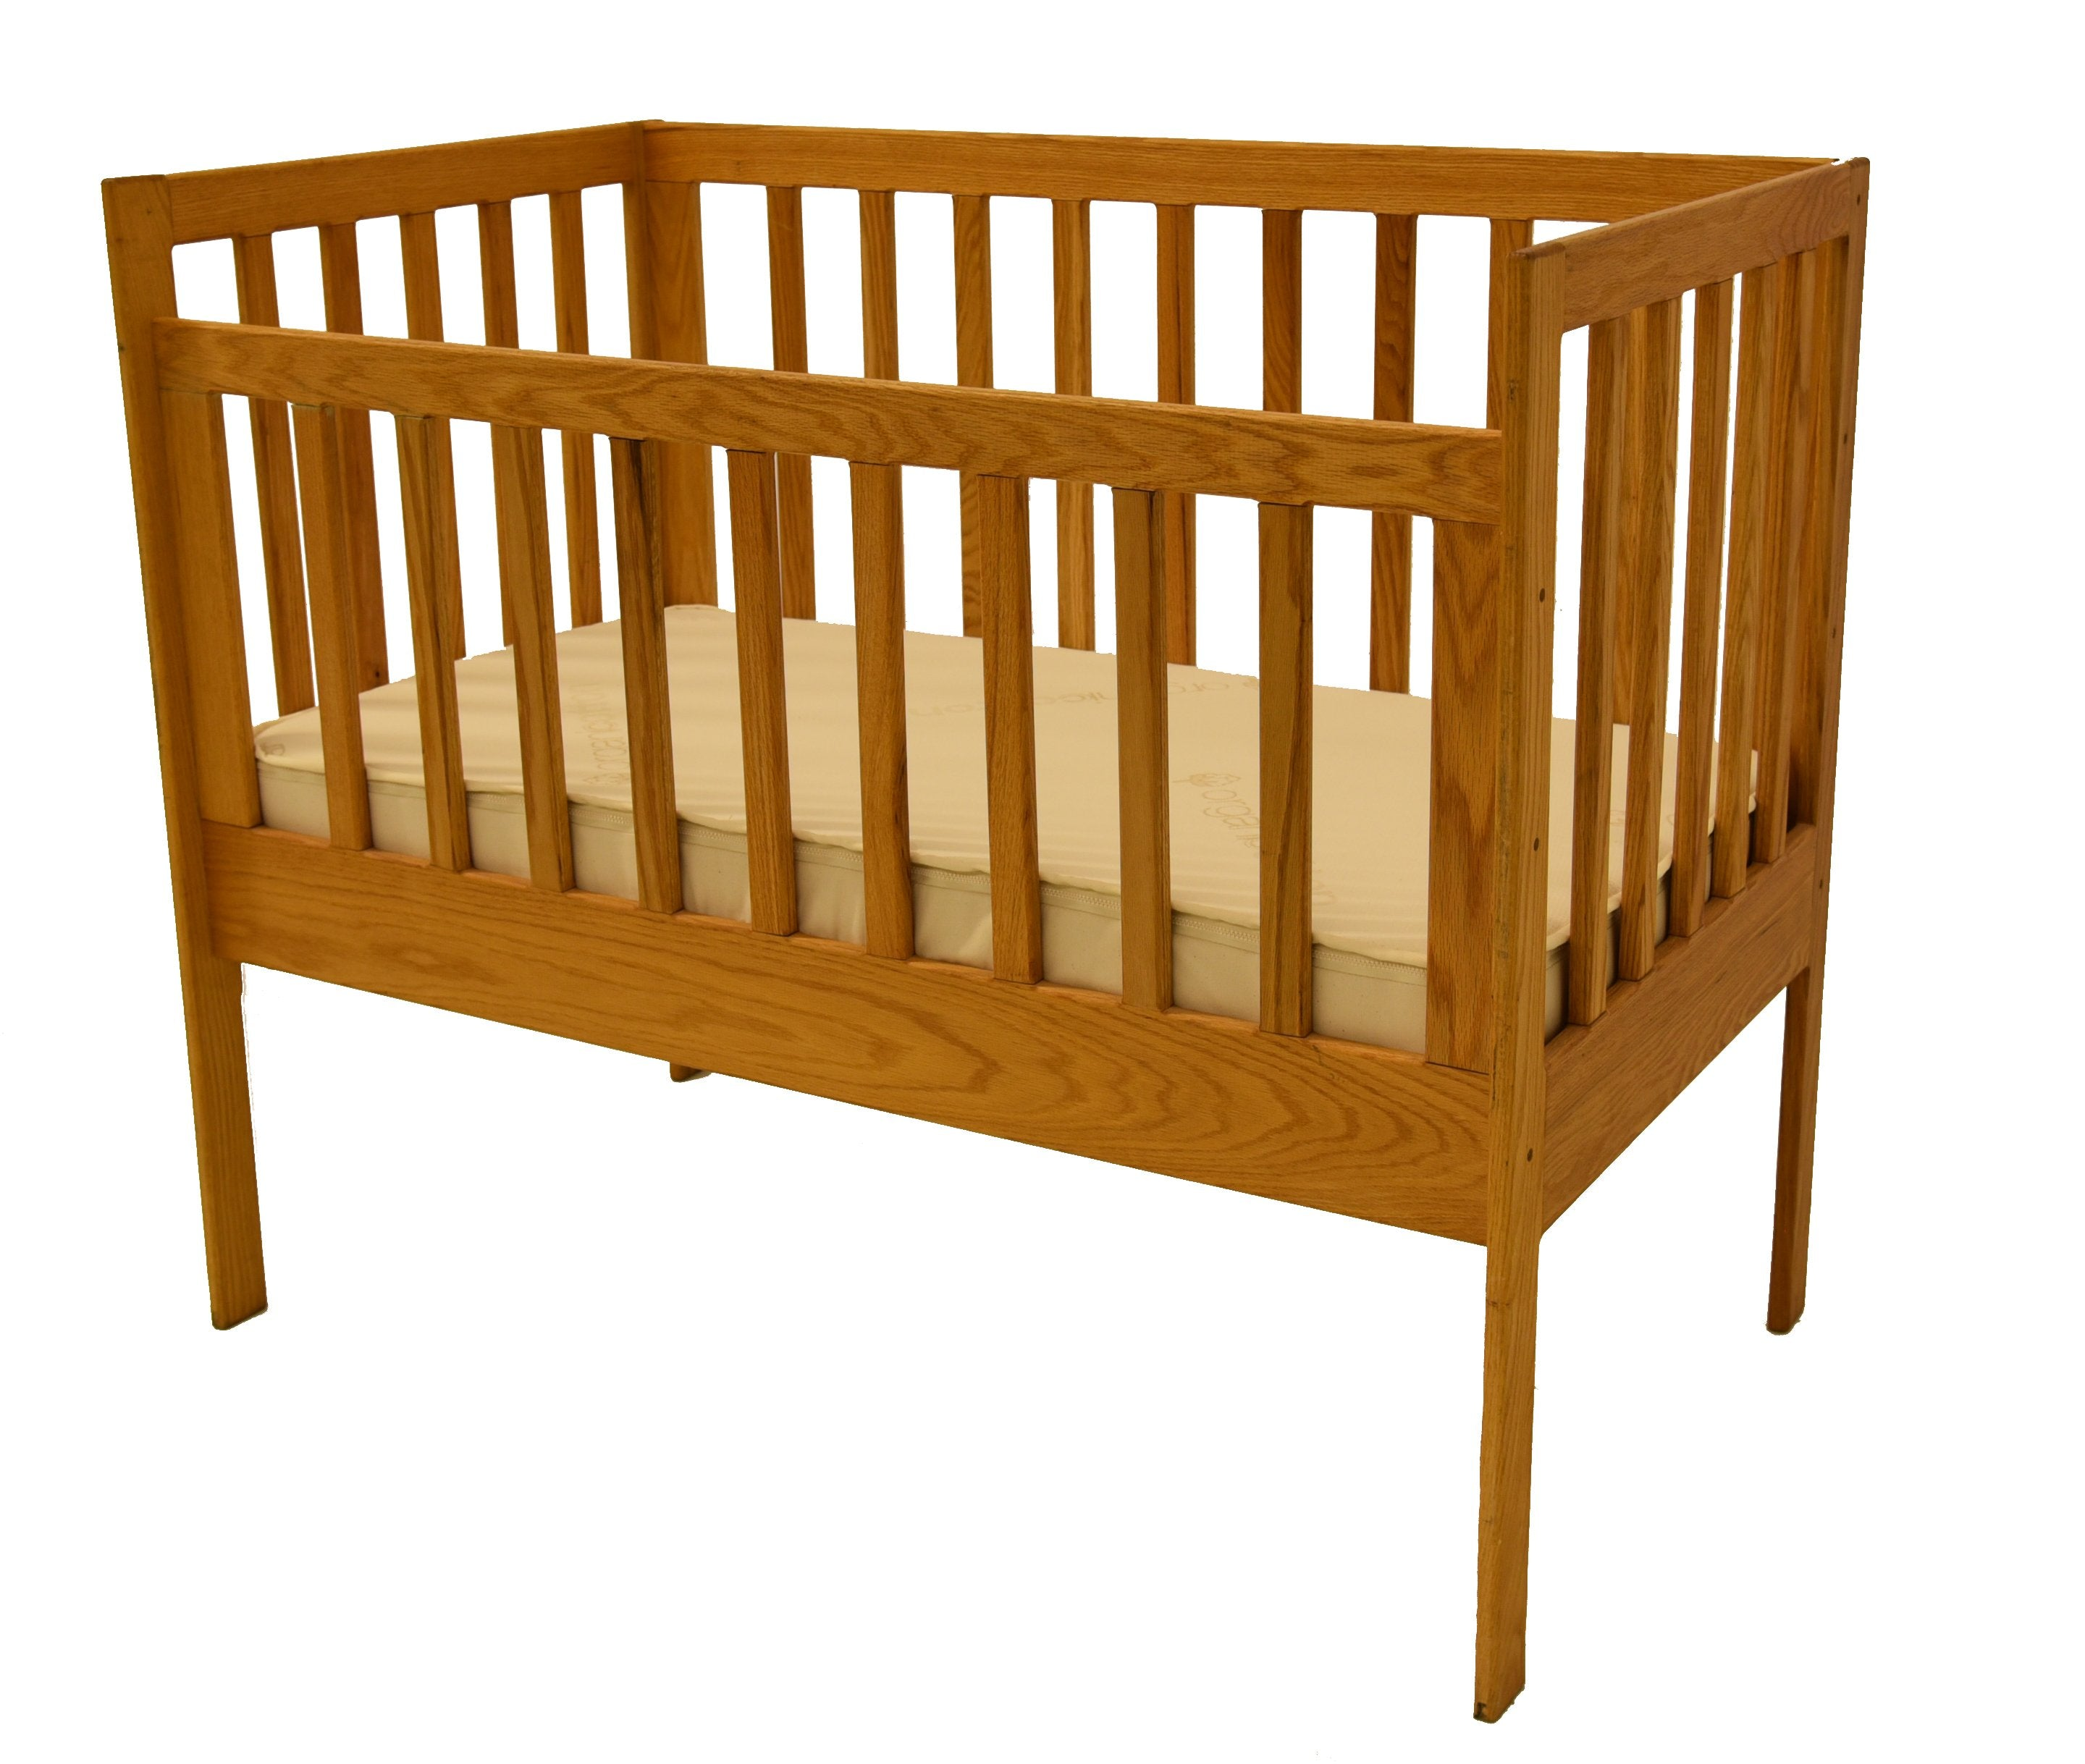 Your child is sleeping on Crib Mattress without toxic chemicals.